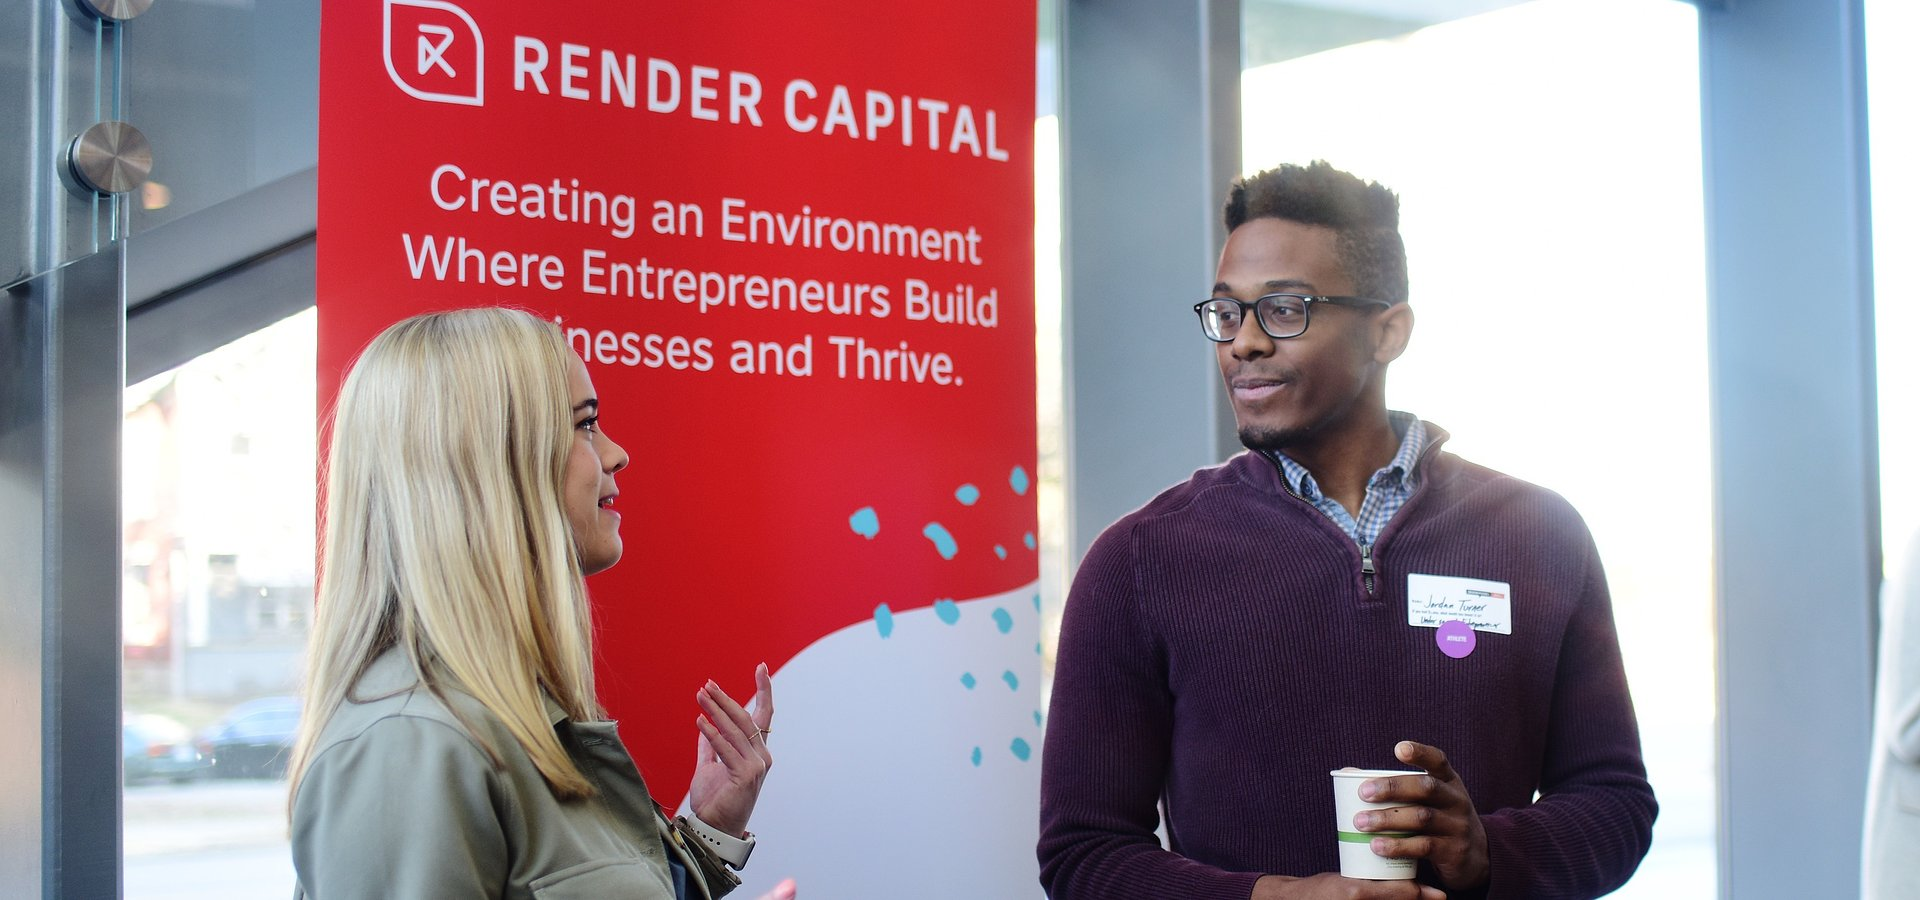 Render Capital Receives Almost 200 Applications For Startup Competition